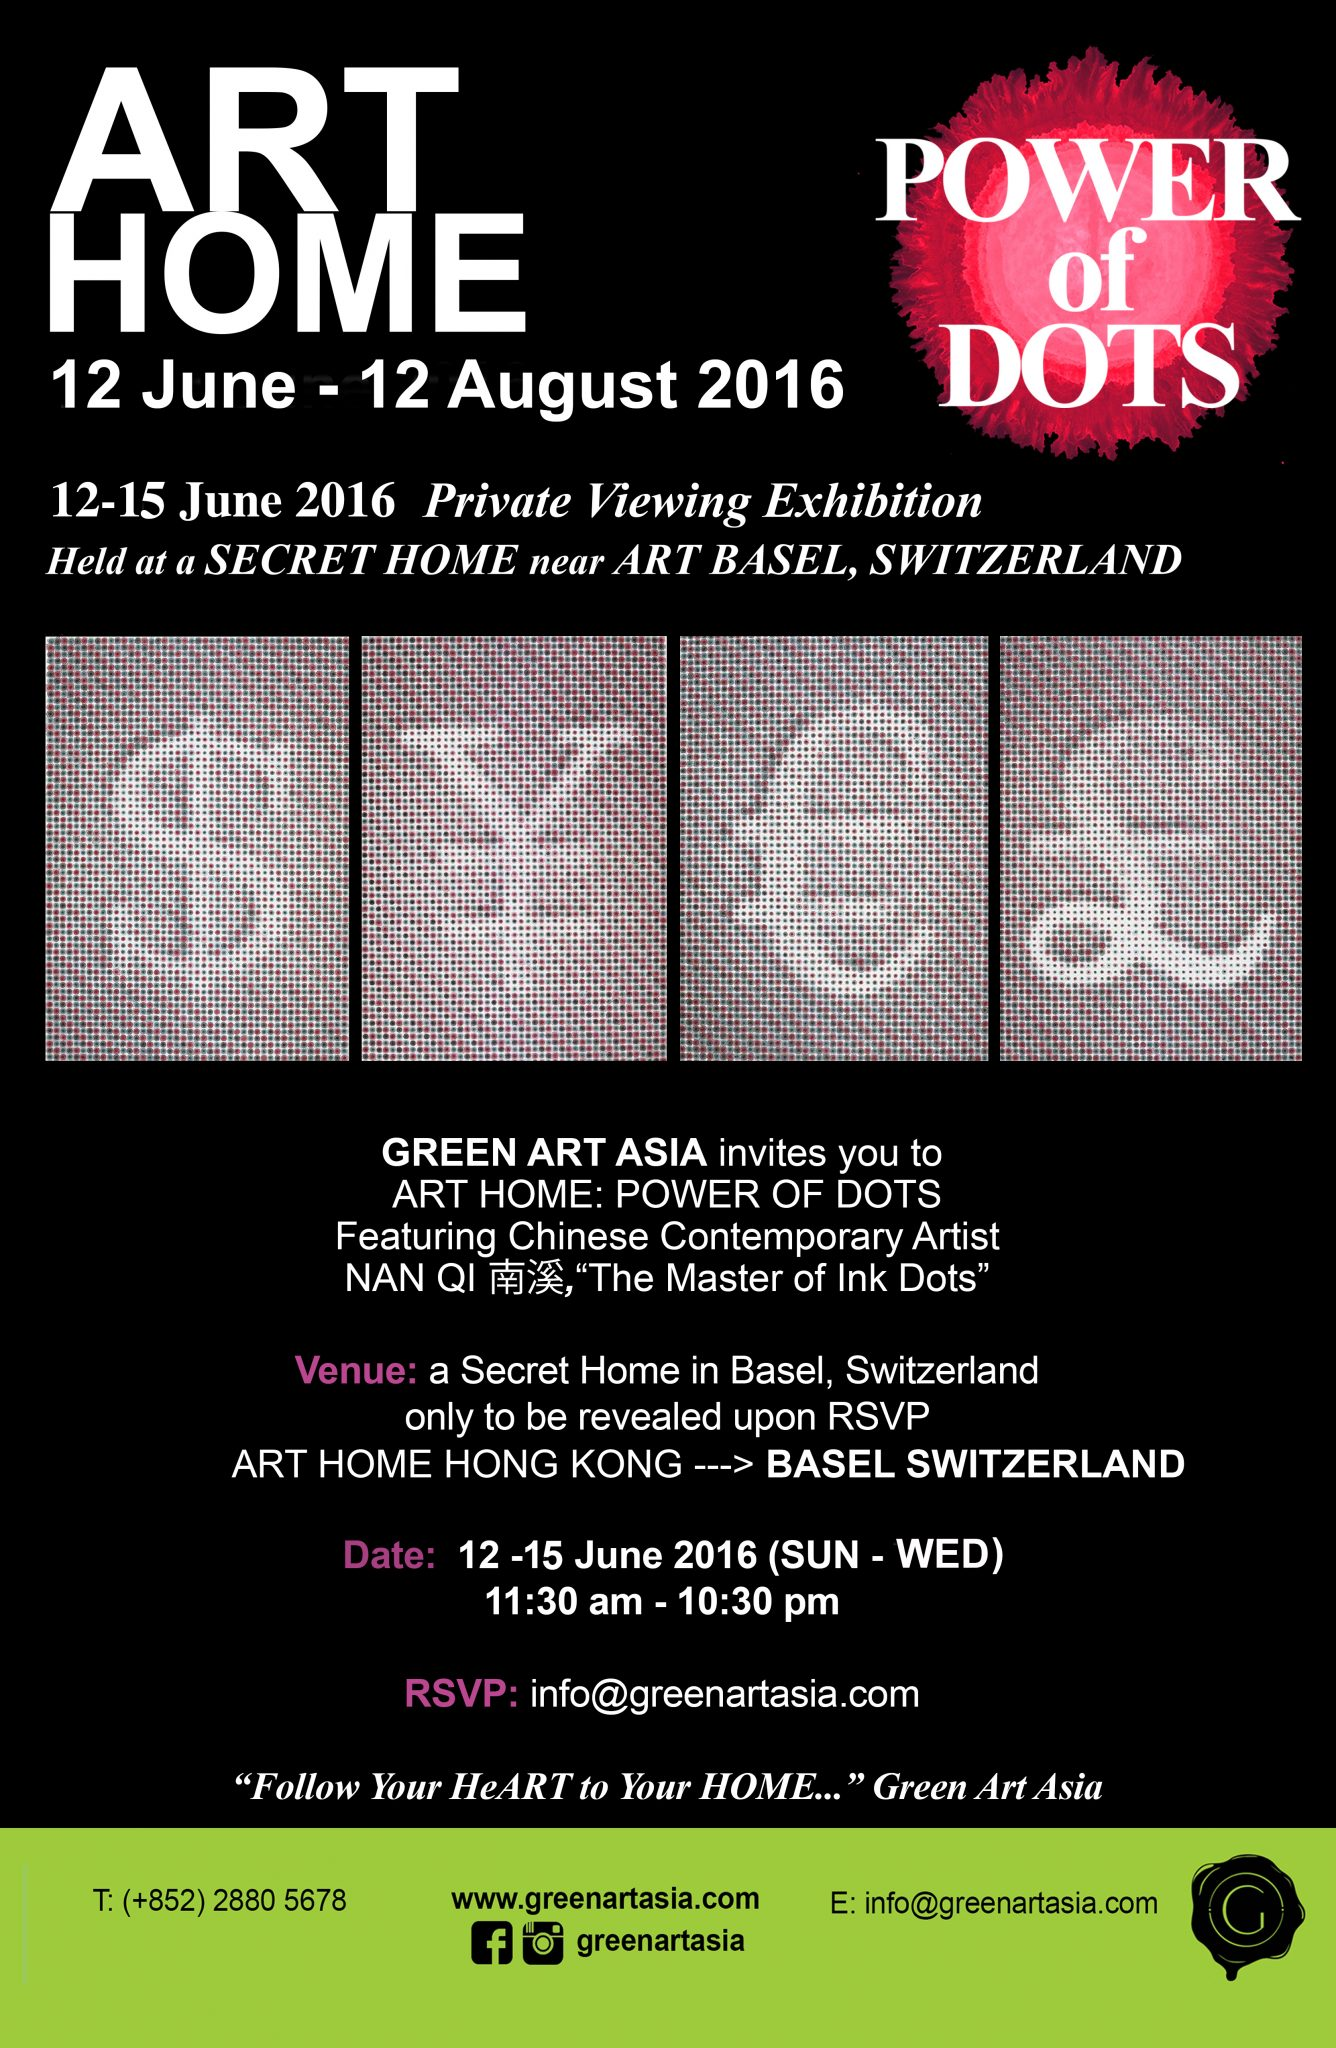 ART HOME power of dots (Invite)